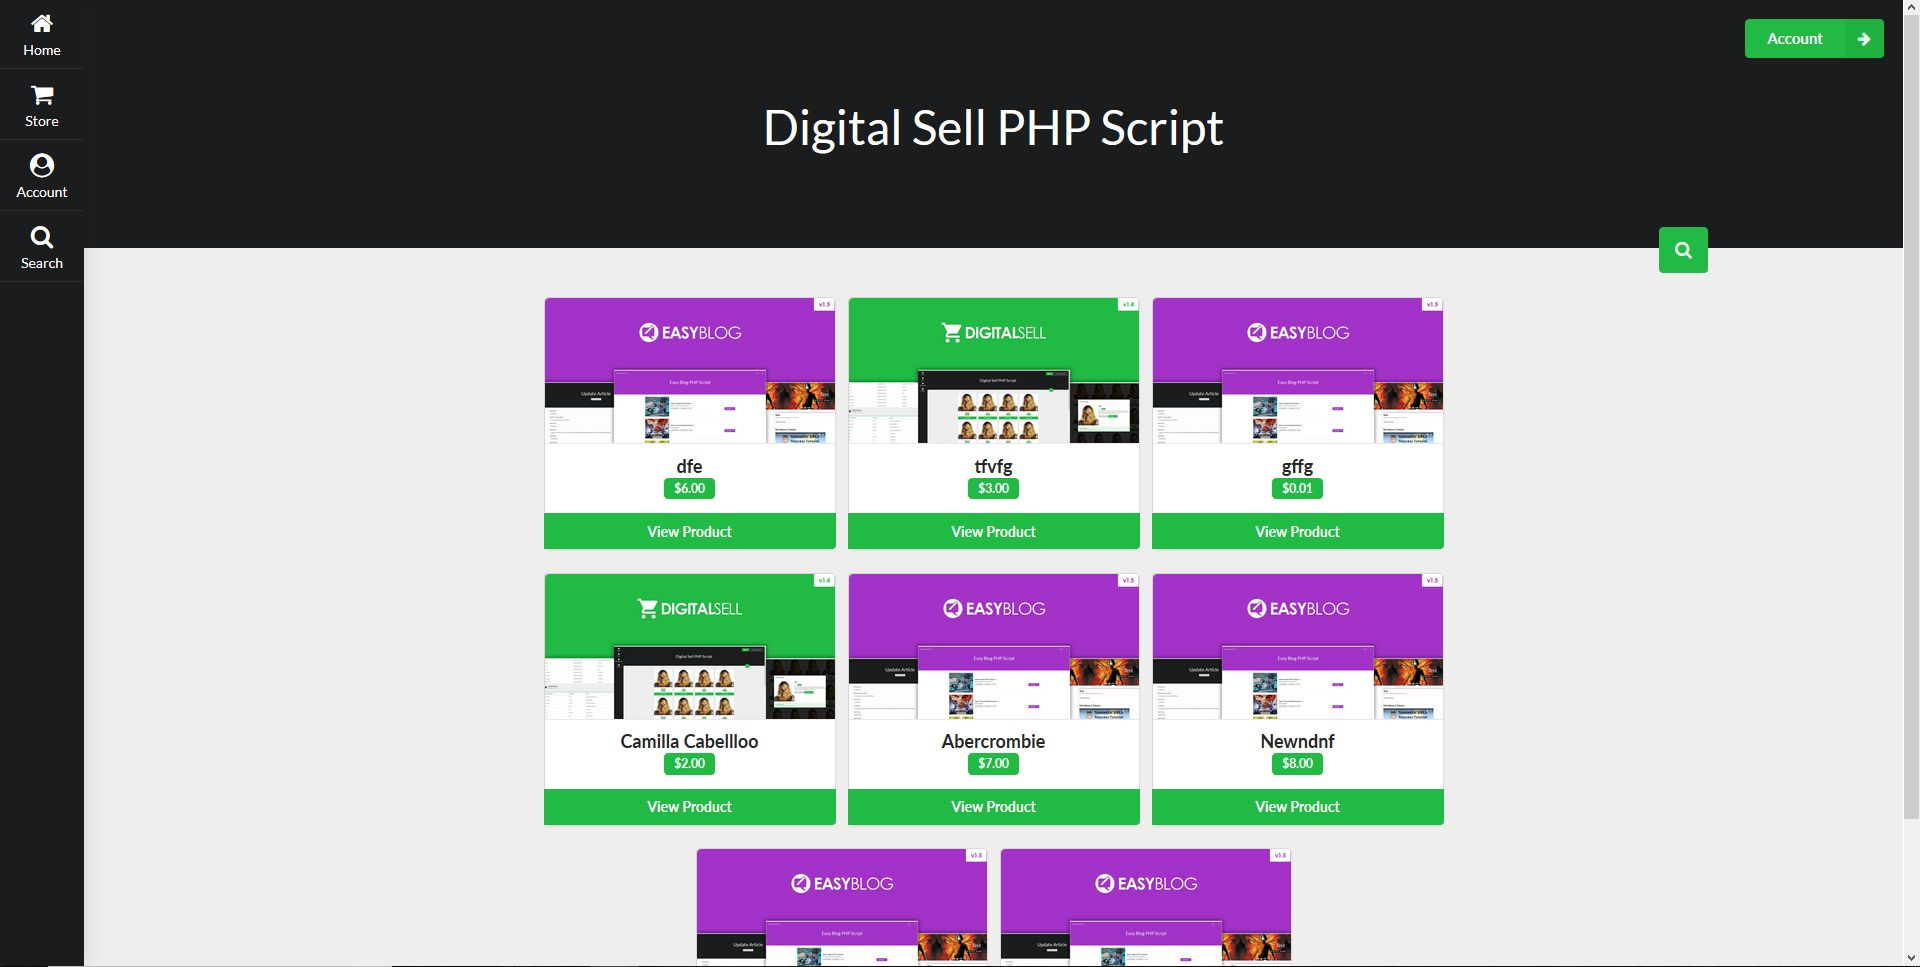 Digital Sell PHP Script Screenshot 1